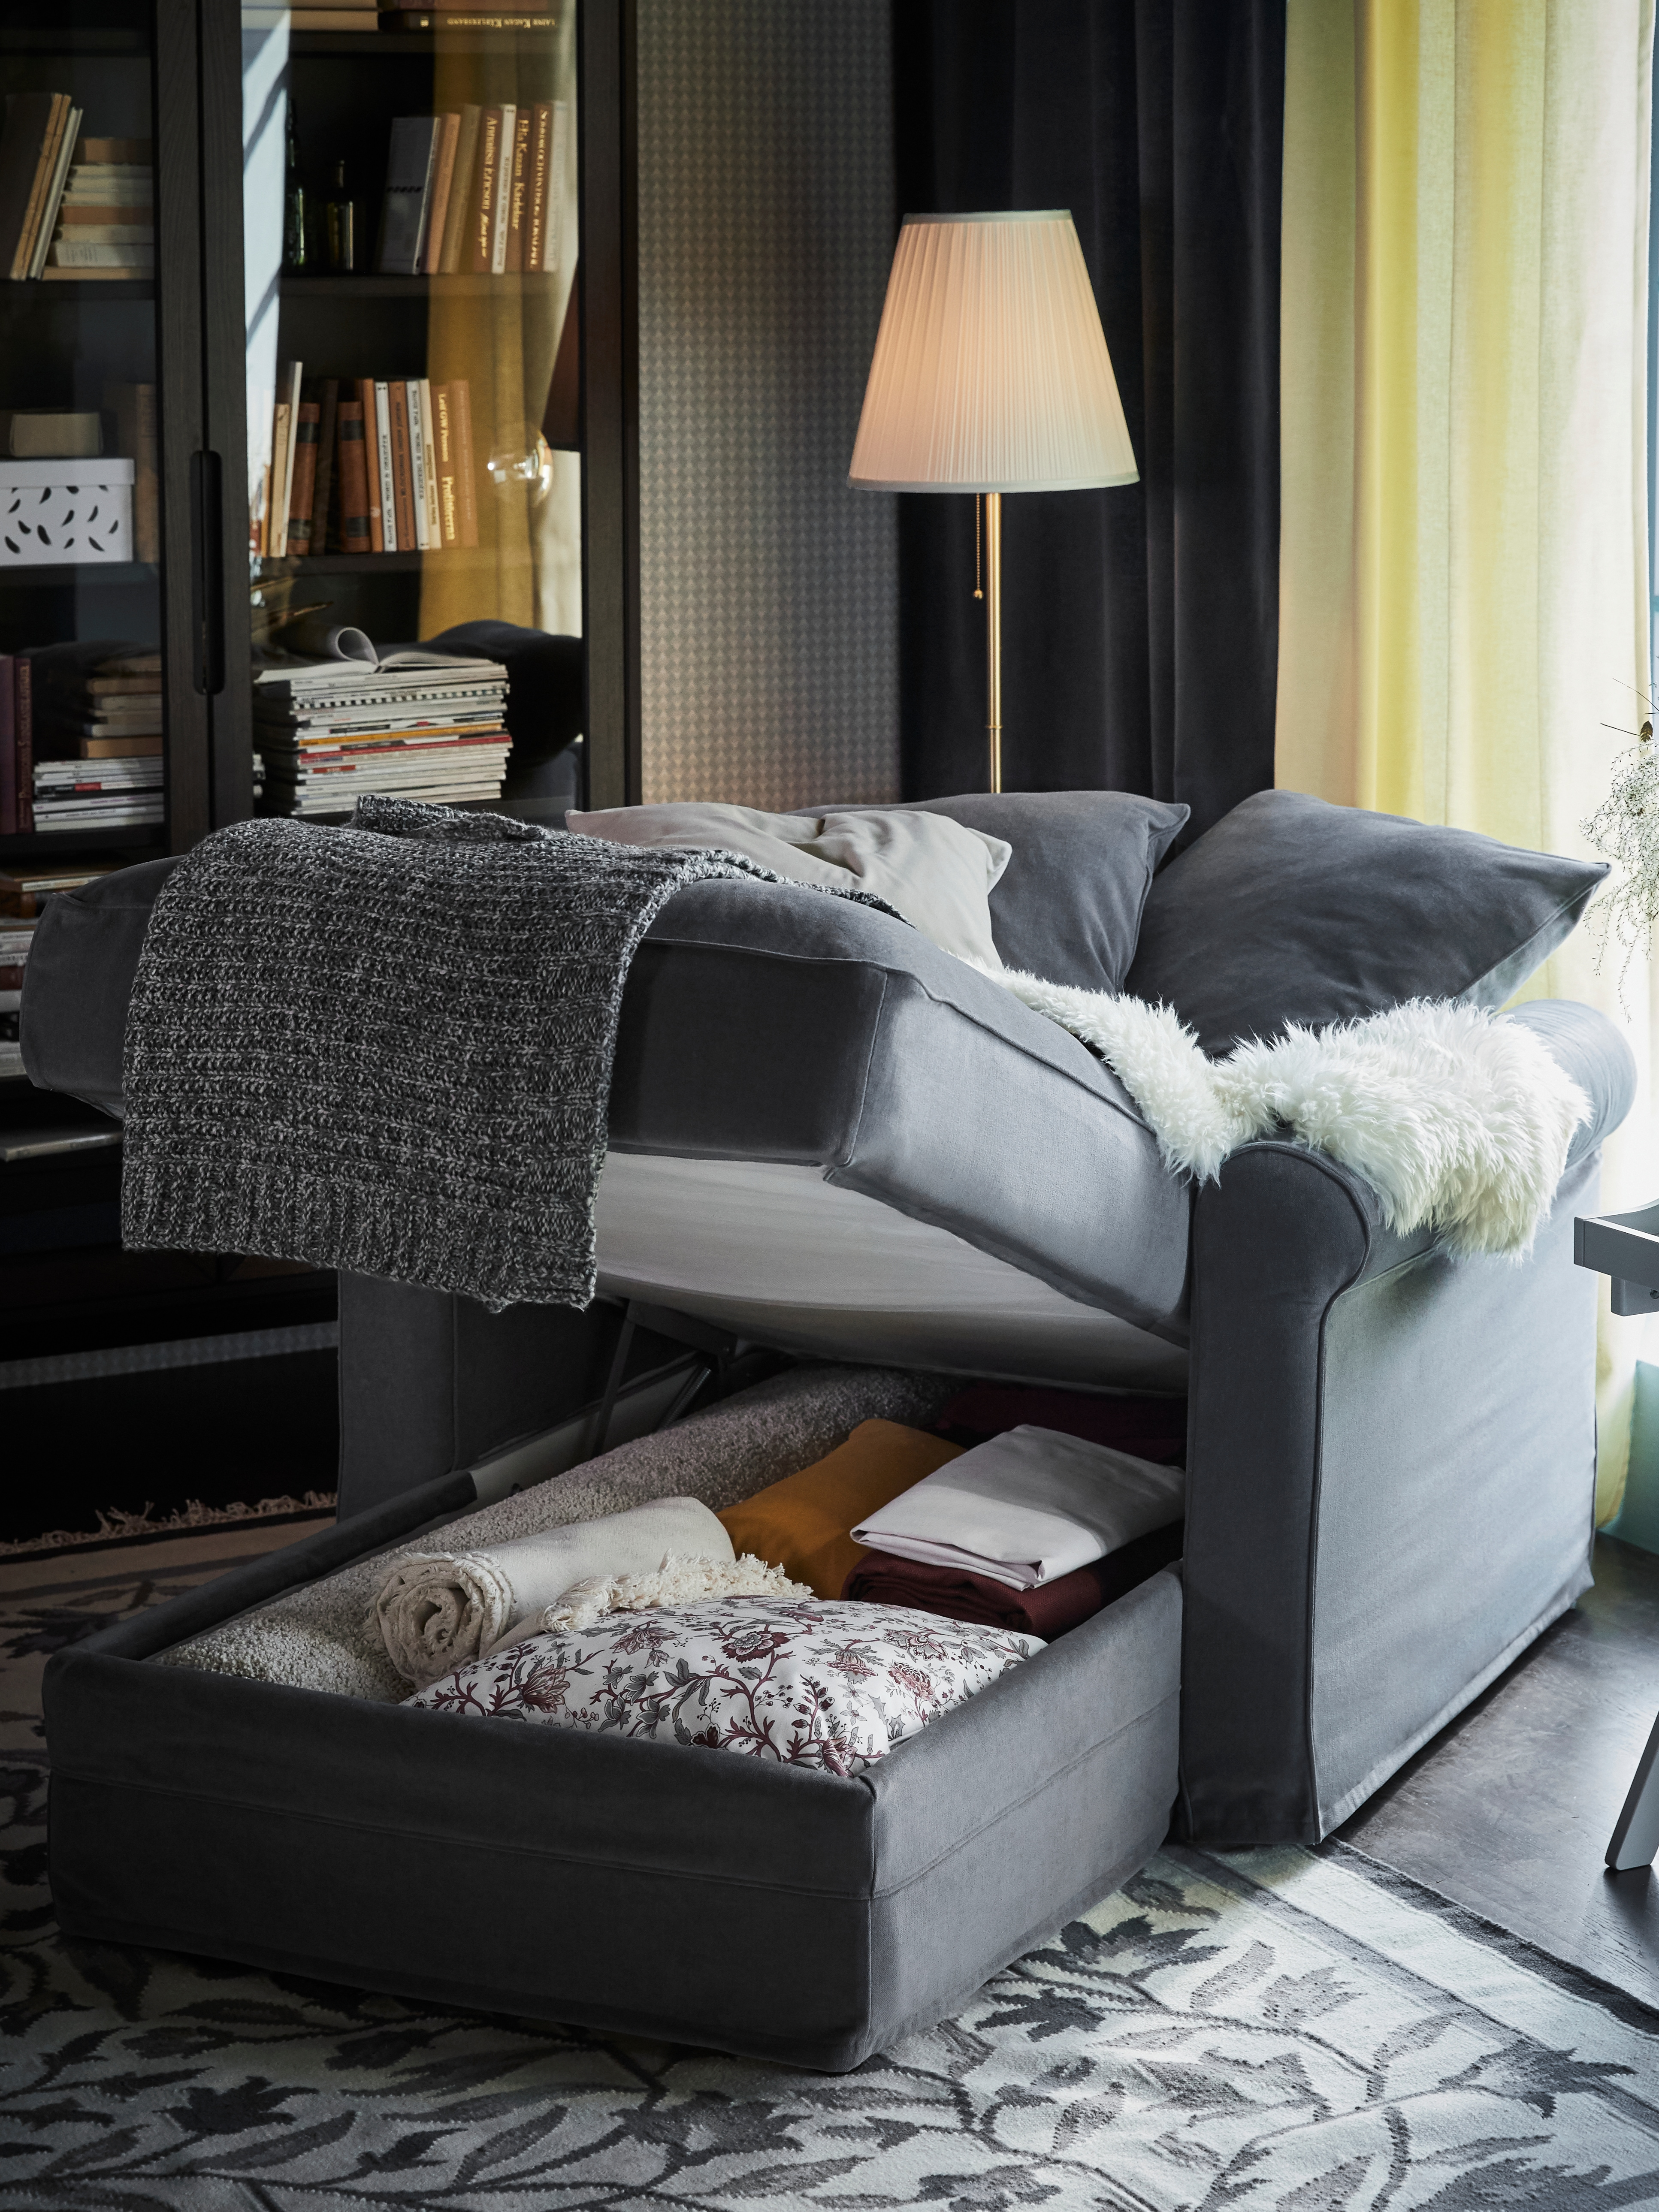 A Ljungen medium grey GRÖNLID chaise longue is by a cabinet. Its seat is lifted to show storage of cushions and throws.